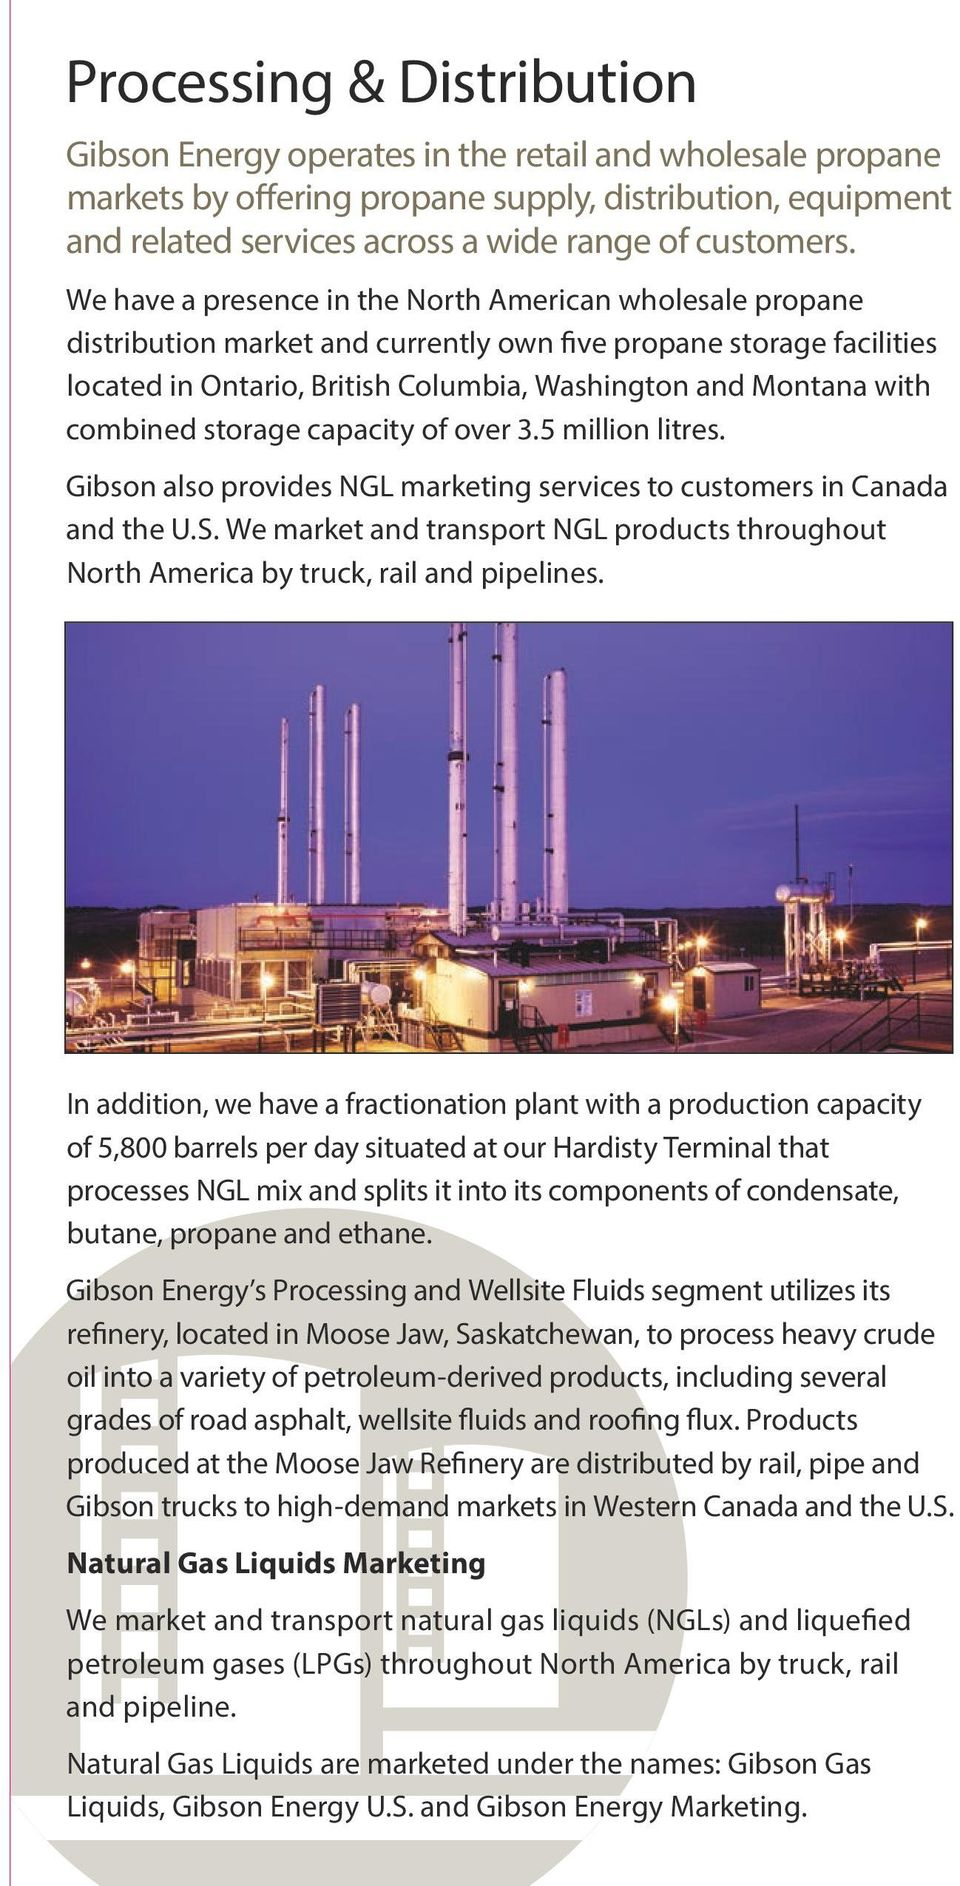 combined storage capacity of over 3.5 million litres. Gibson also provides NGL marketing services to customers in Canada and the U.S.